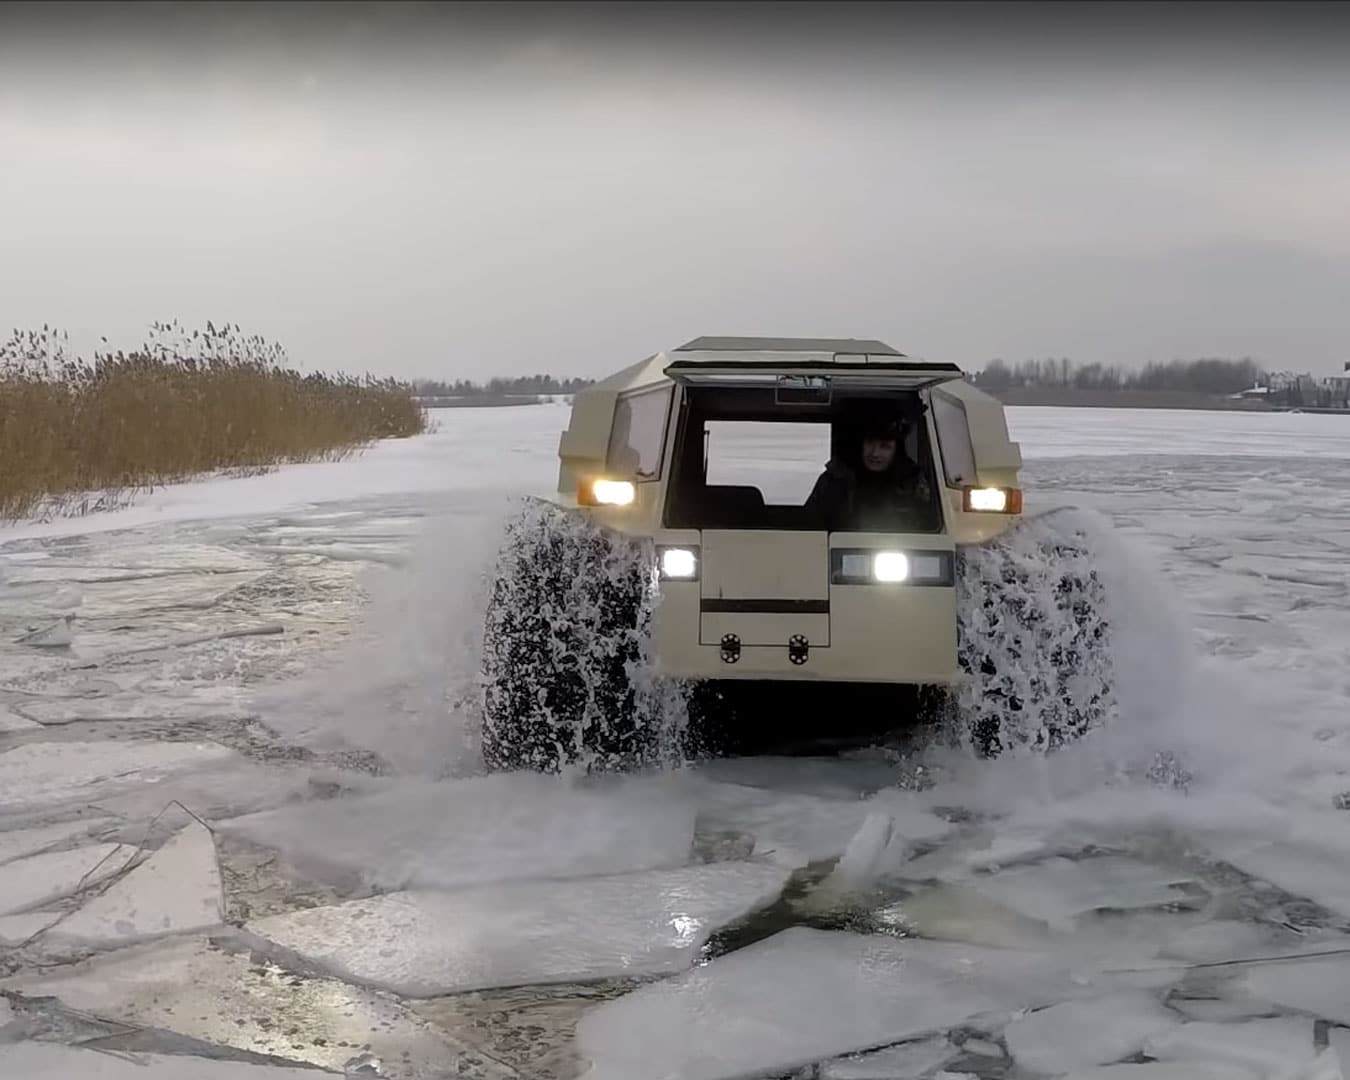 Sherp Atv For Sale >> Sherp ATV Sales - USA. All-terrain, Amphibious Work Machine with 5' Tires